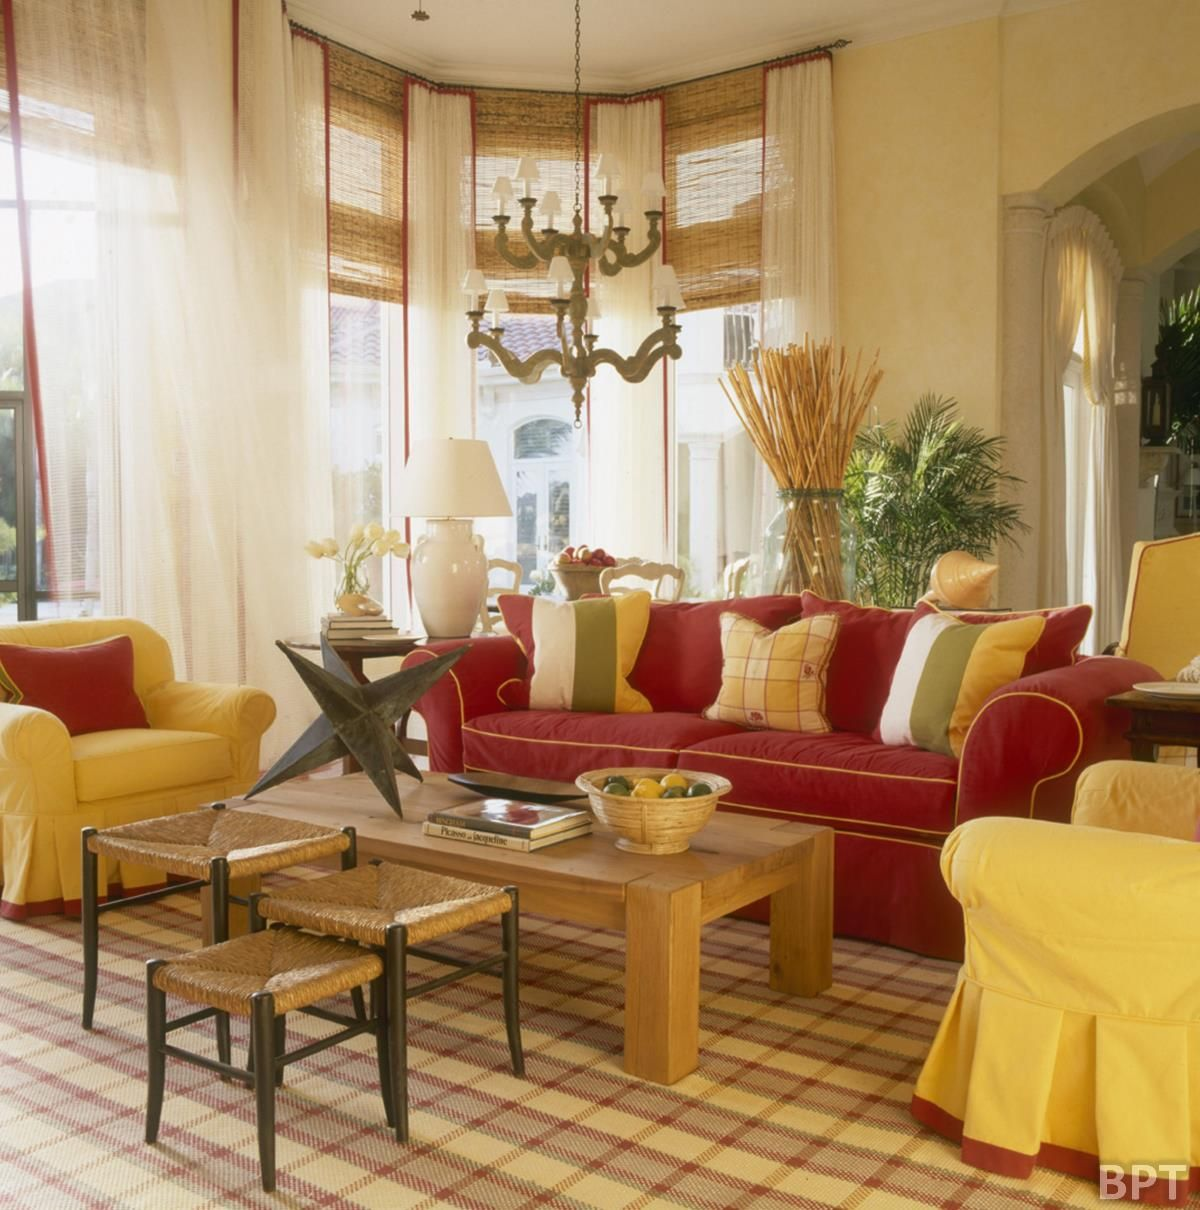 Classic interior living room design with yellow and red Yellow living room decorating ideas